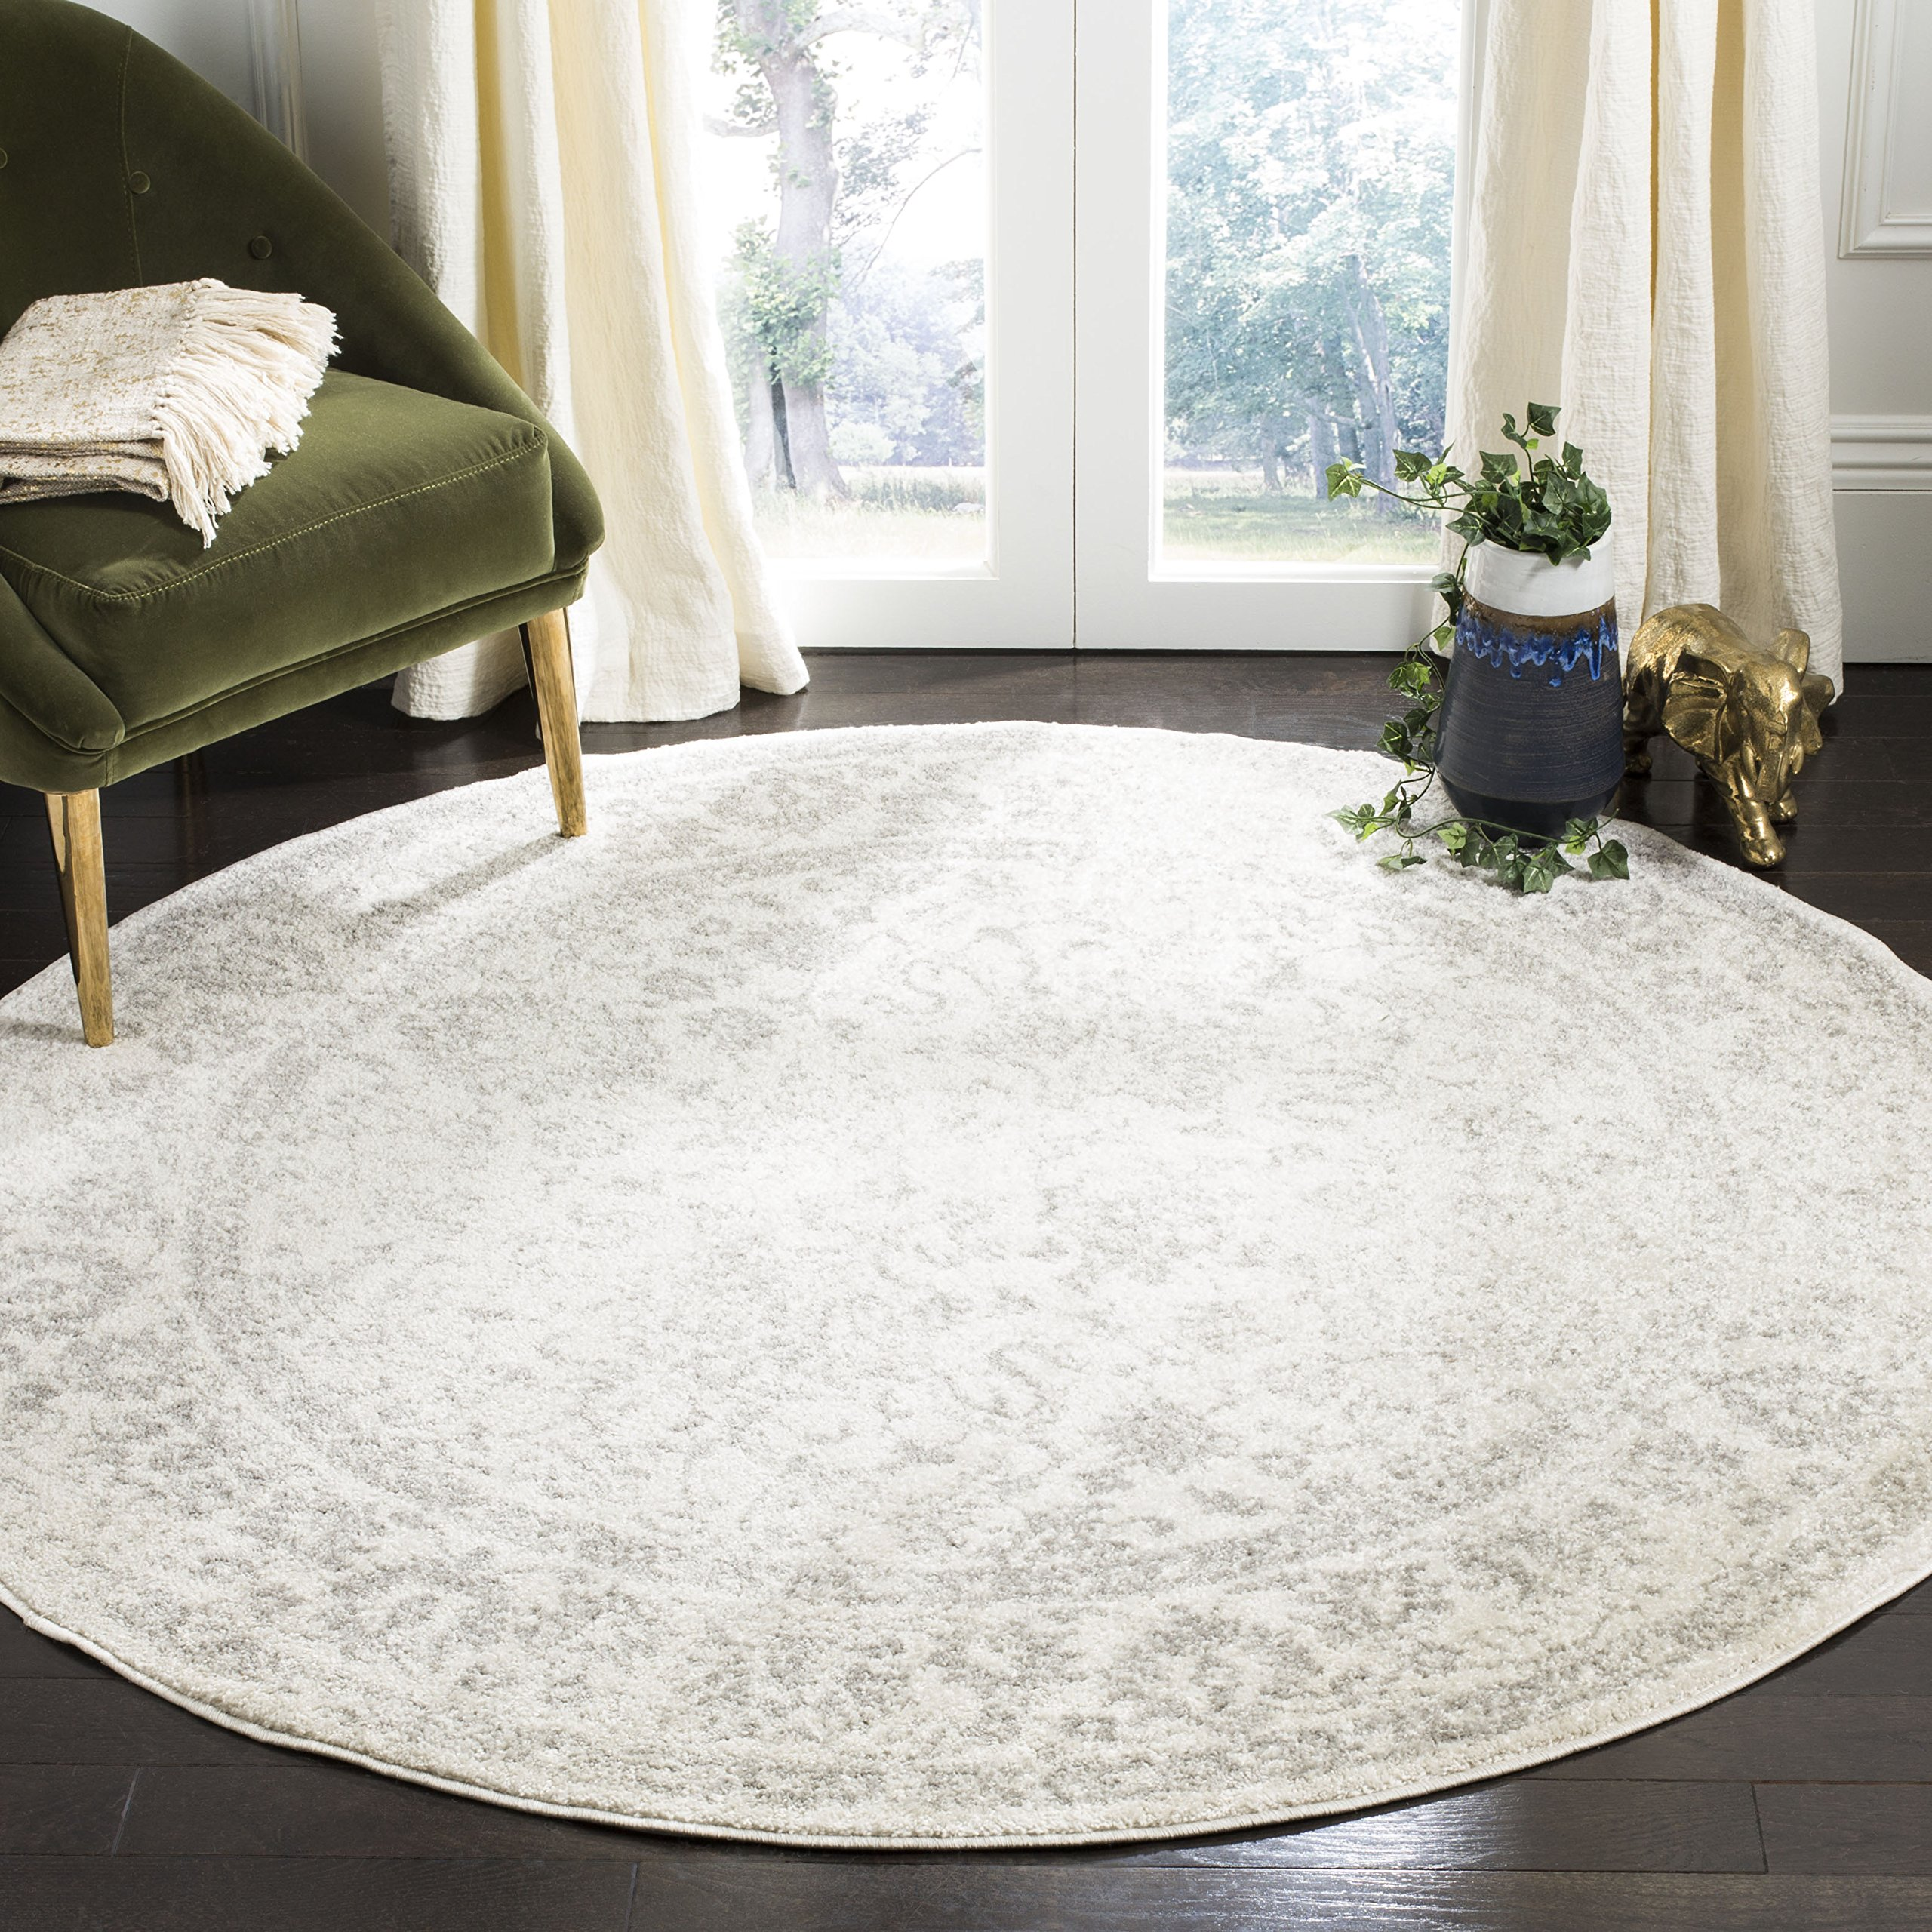 Safavieh Adirondack Collection ADR109C Ivory and Silver Oriental Vintage Distressed Round Area Rug (4' Diameter)